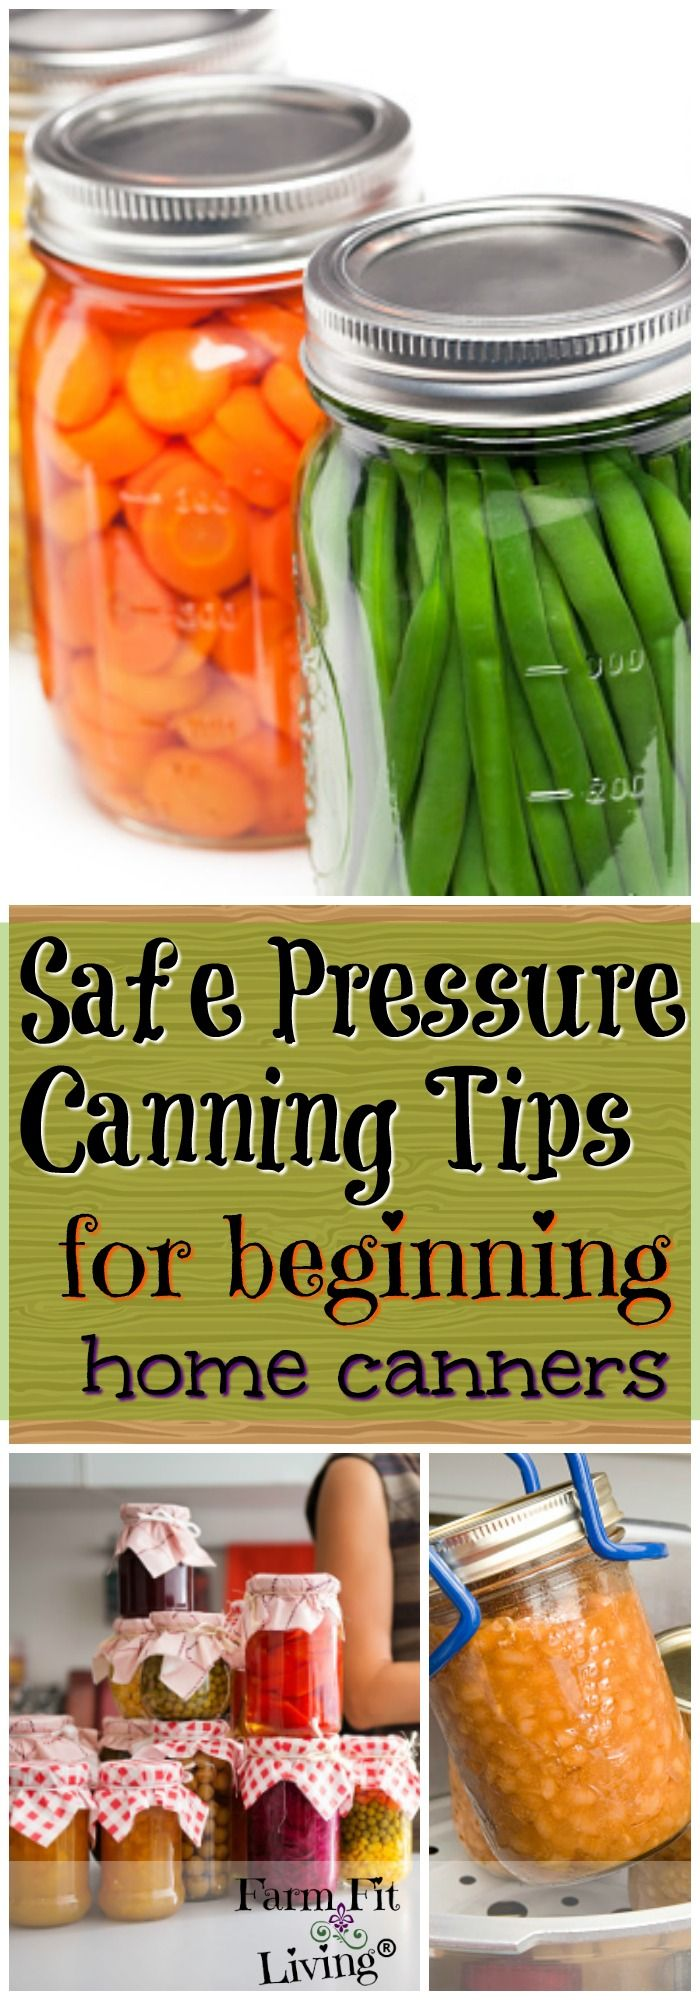 Are you looking for a good list of safe pressure canning tips? These tips are proven ways you'll have a safe canning experience. via @www.pinterest.com/farmfitliving